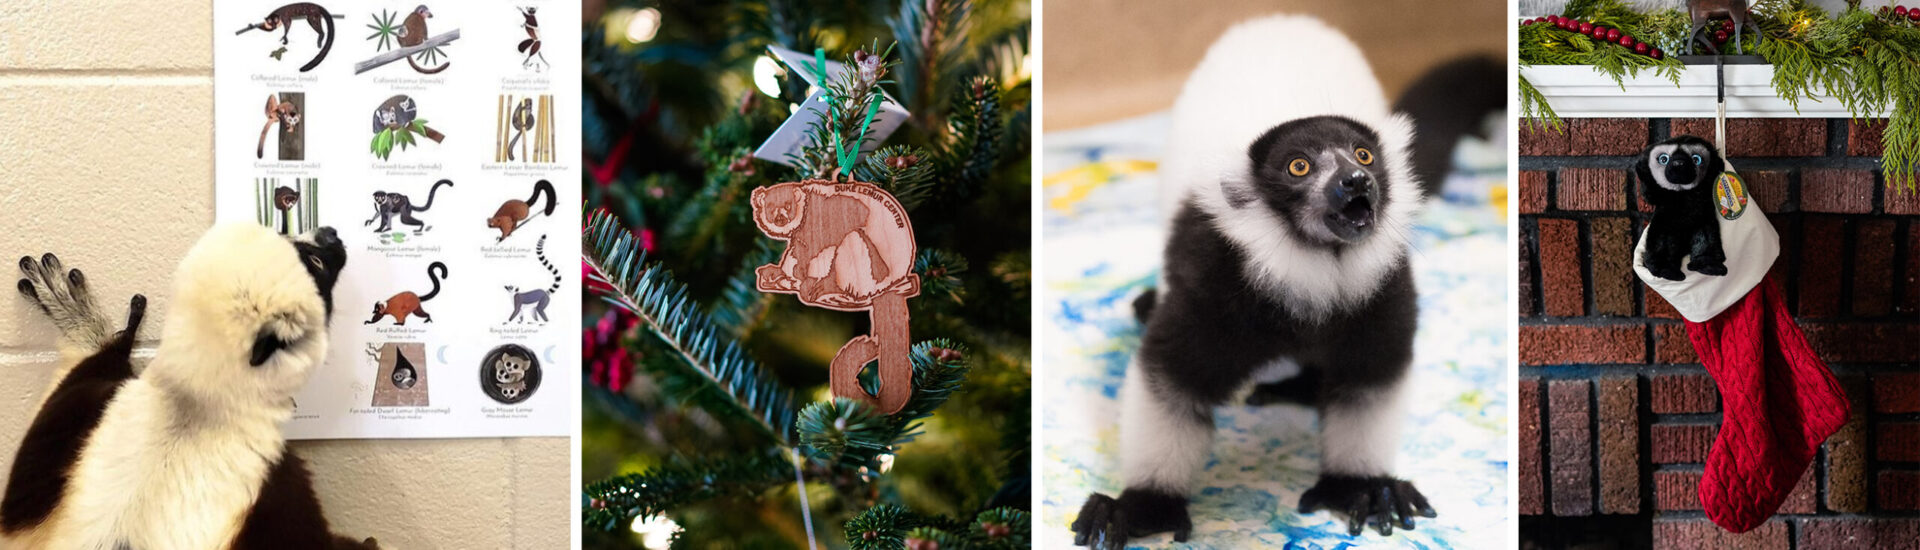 collage with poster, ornament, lemur painting, and stuffed animal in a christmas stocking